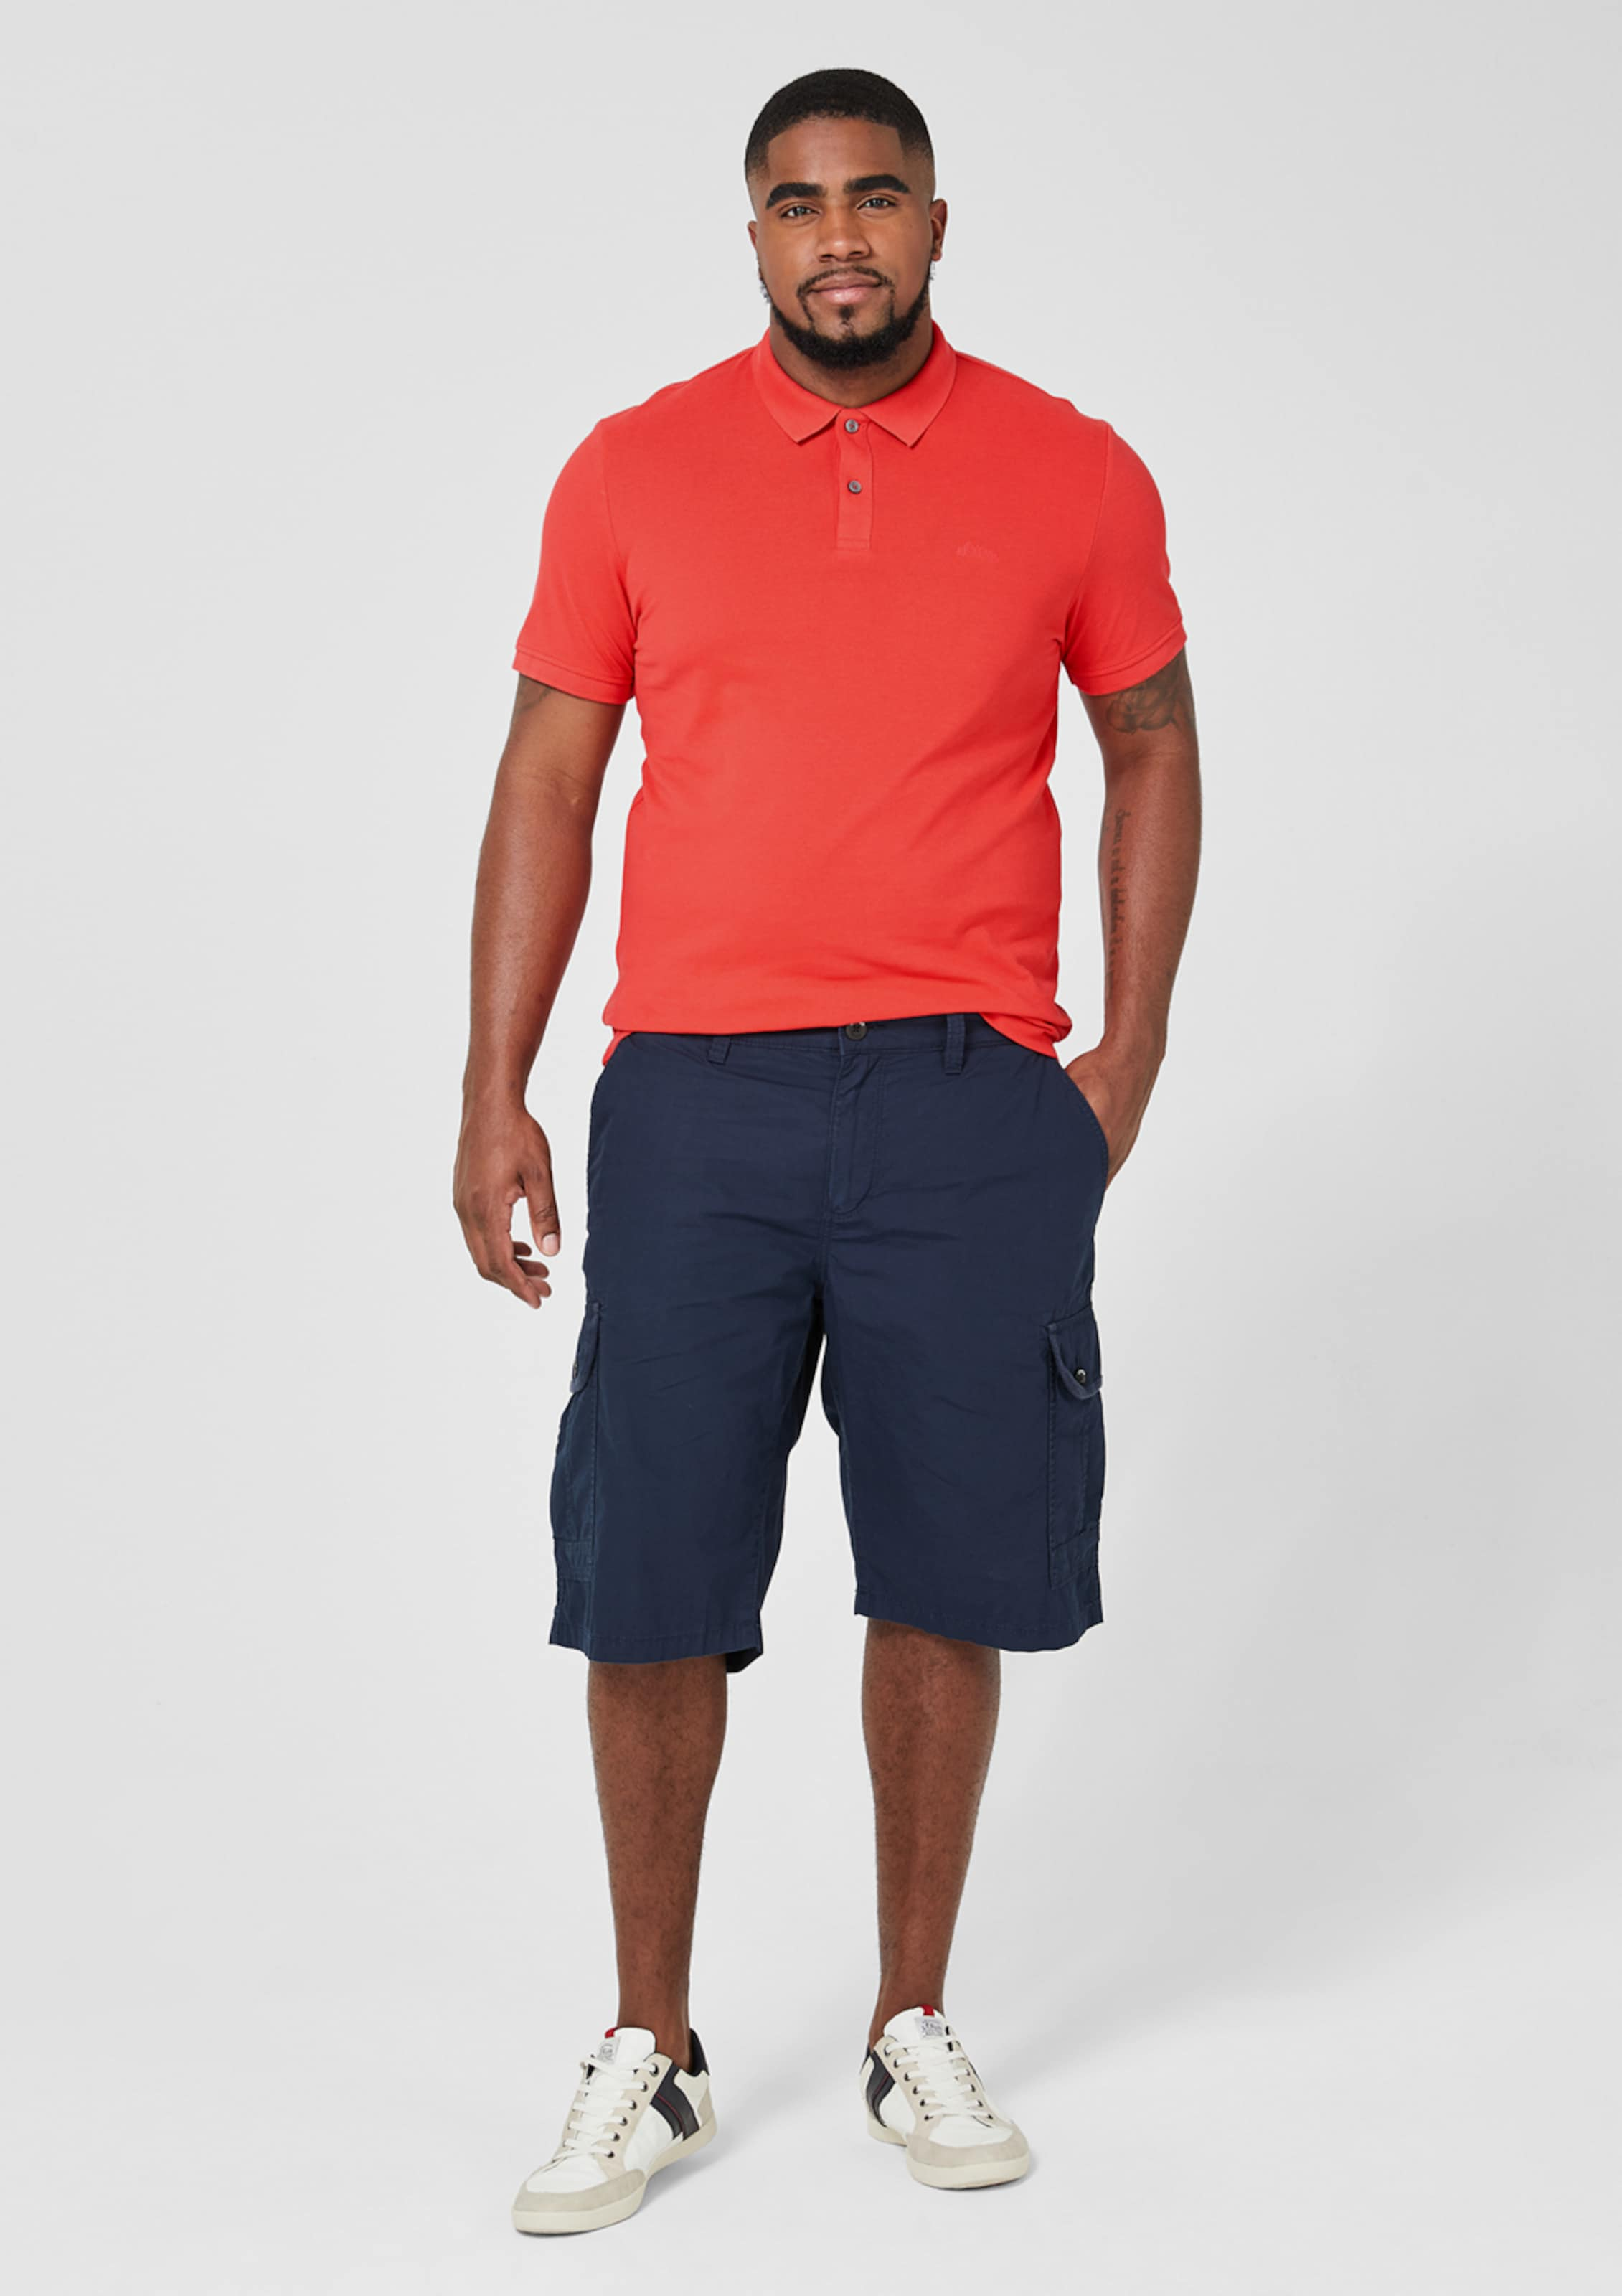 S oliver Label Red Poloshirt In Rot 76fgYby